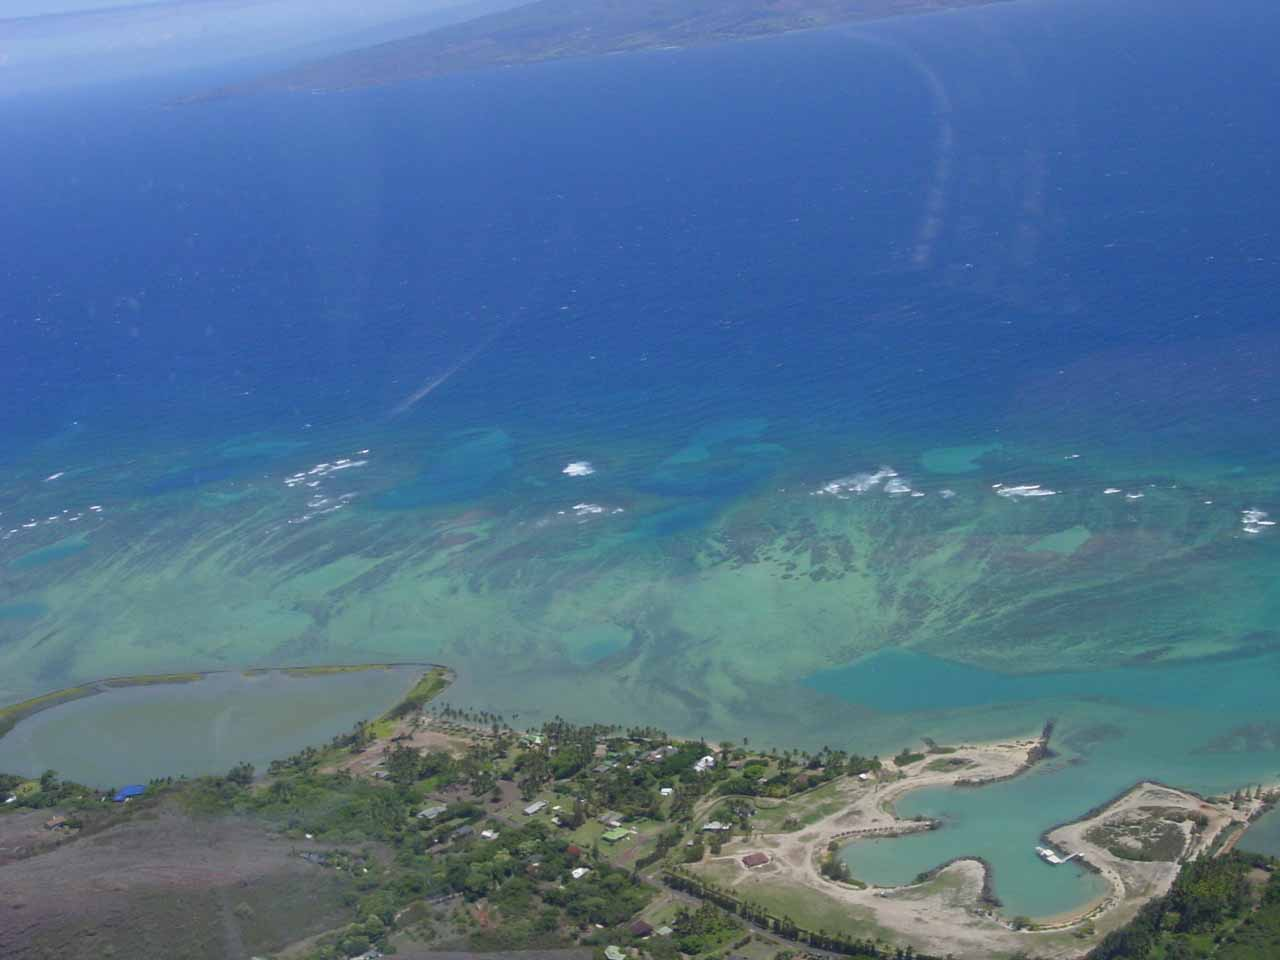 Looking down at reefs and fish ponds as we left Molokai on our September 2003 tour